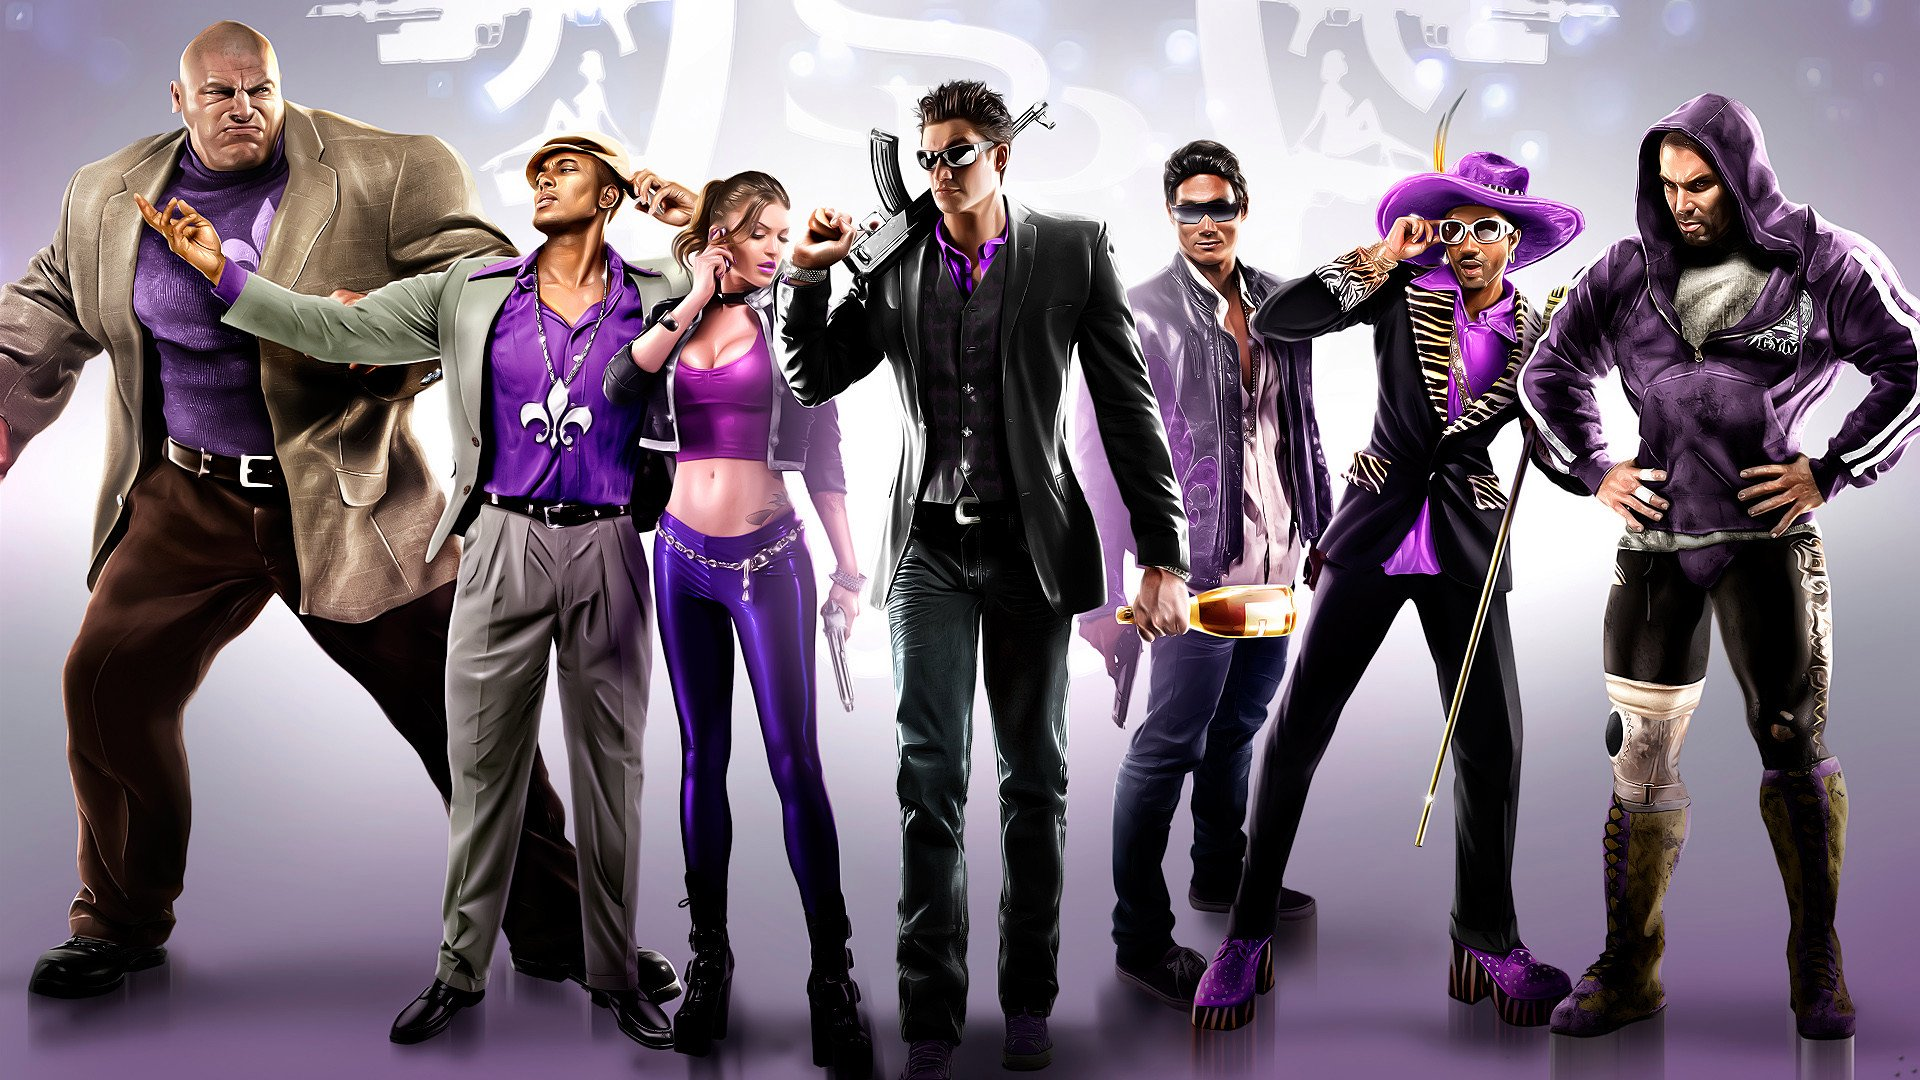 Les membres du gang Saints Row posant pour une photo